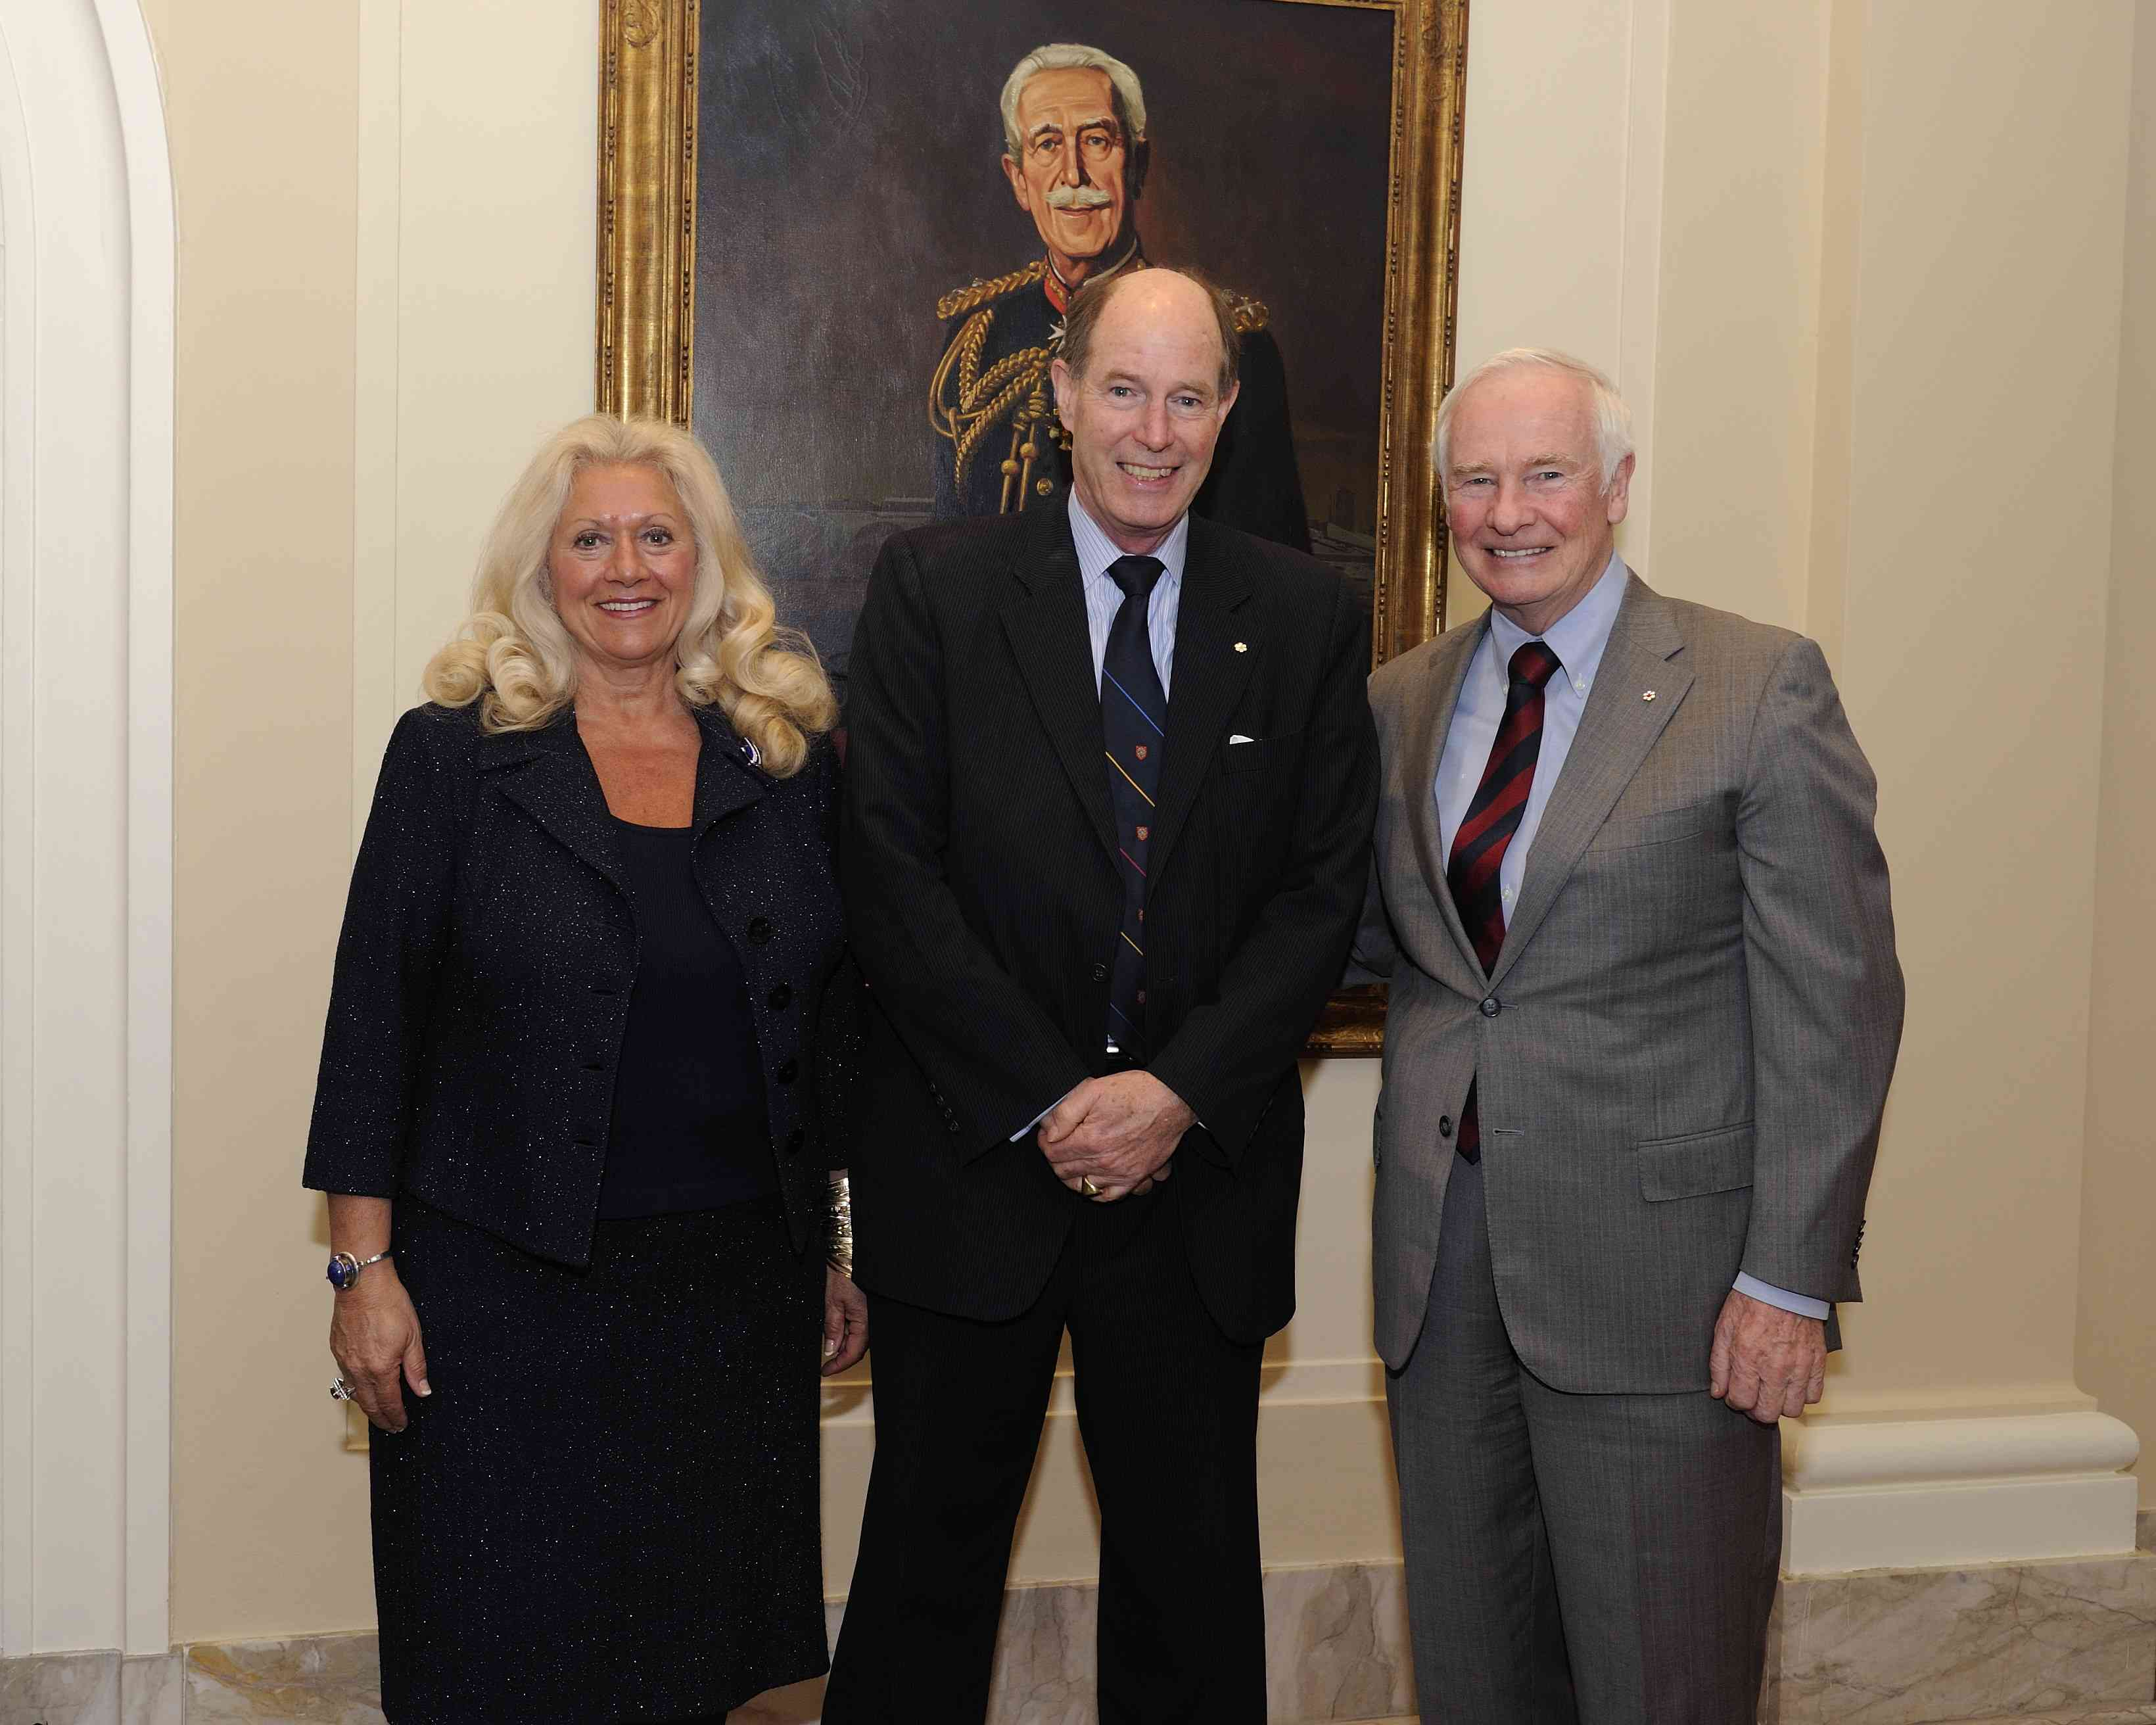 Dr. David Dodge is surrounded by Ms. Maria David-Evans and the Governor General. The Vanier Medal was created in 1962 in honour of Canada's second Canadian-born governor general, the Right Honourable Georges P. Vanier (seen in the portrait on the wall).